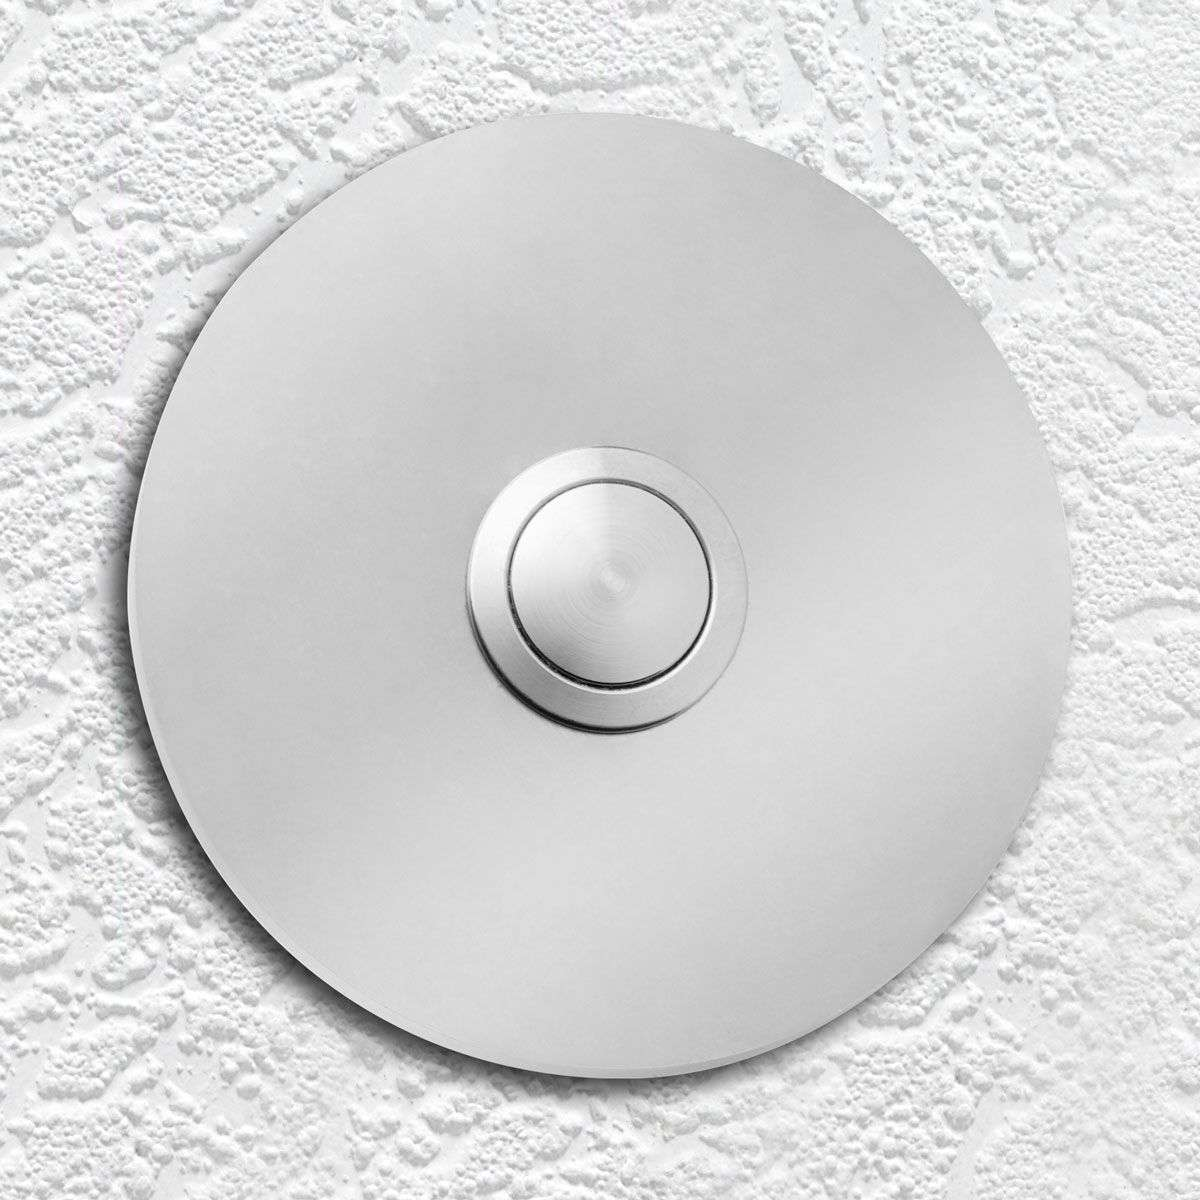 Elegant Round Doorbell Coverplate Made Of Stainless Steel 2011139 31